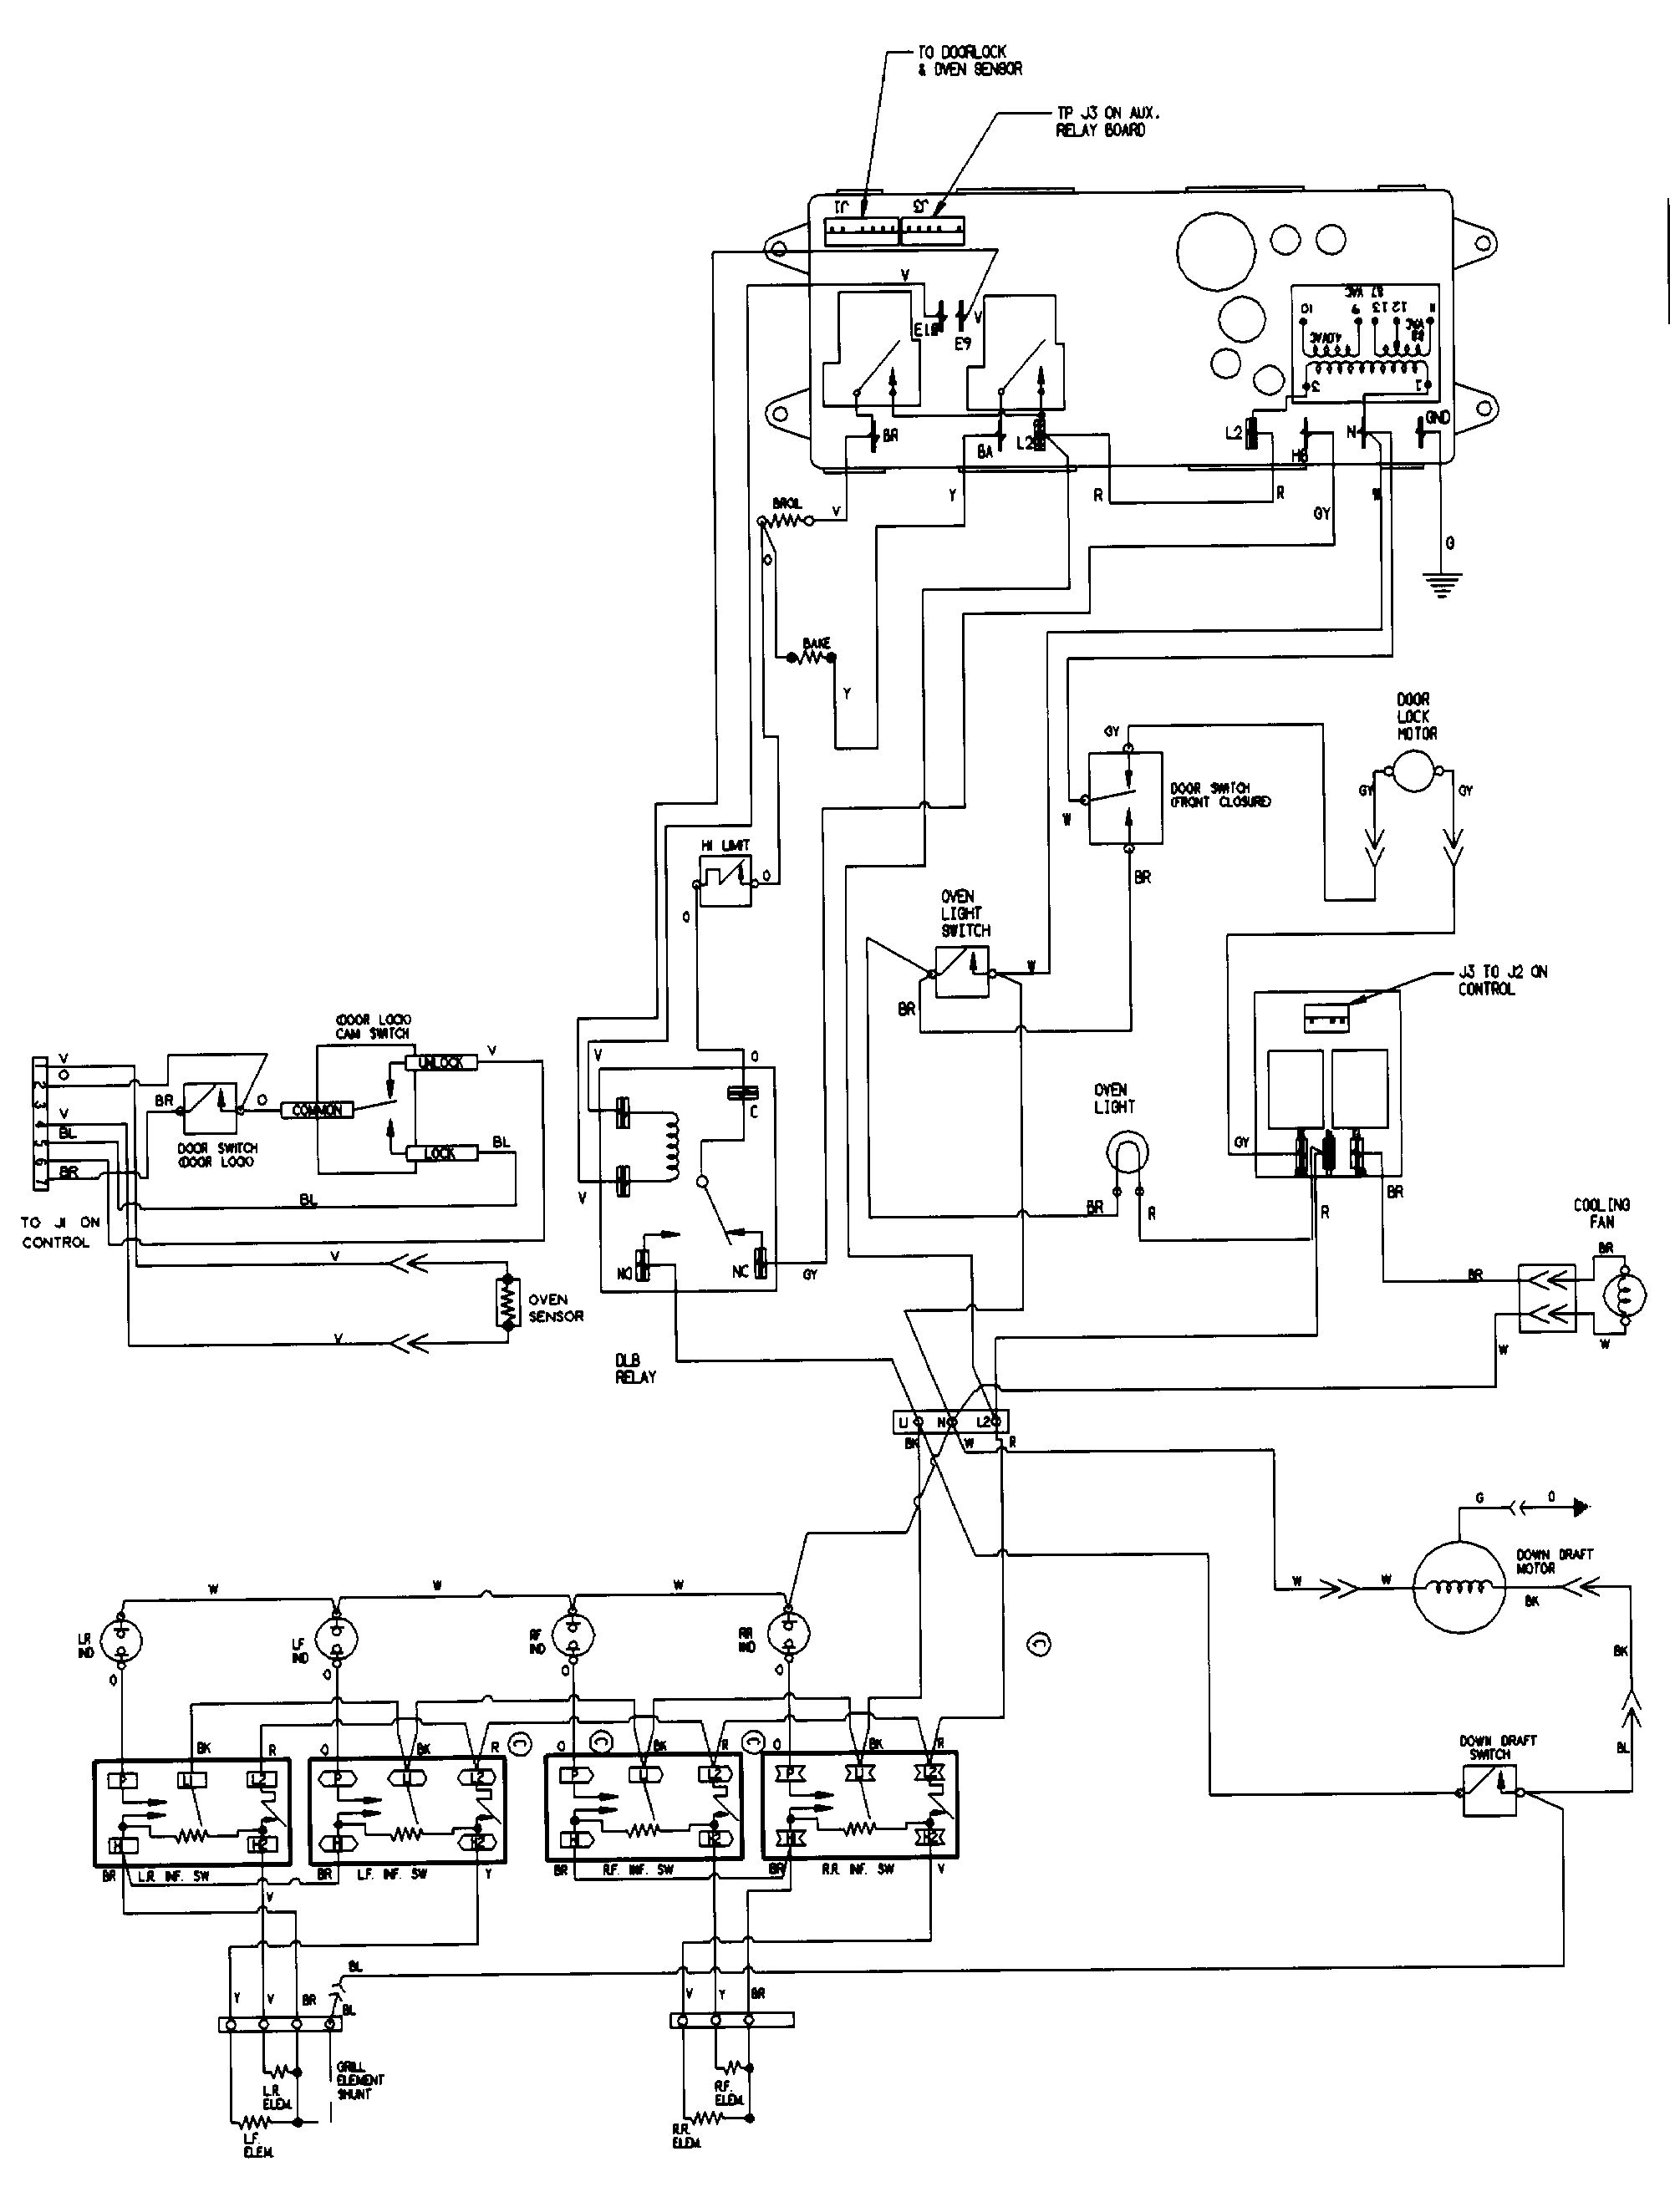 jenn air sve47100b electric slide in range timer stove clocks and rh appliancetimers com Ford Wiring Diagrams Battery Isolator Wiring- Diagram